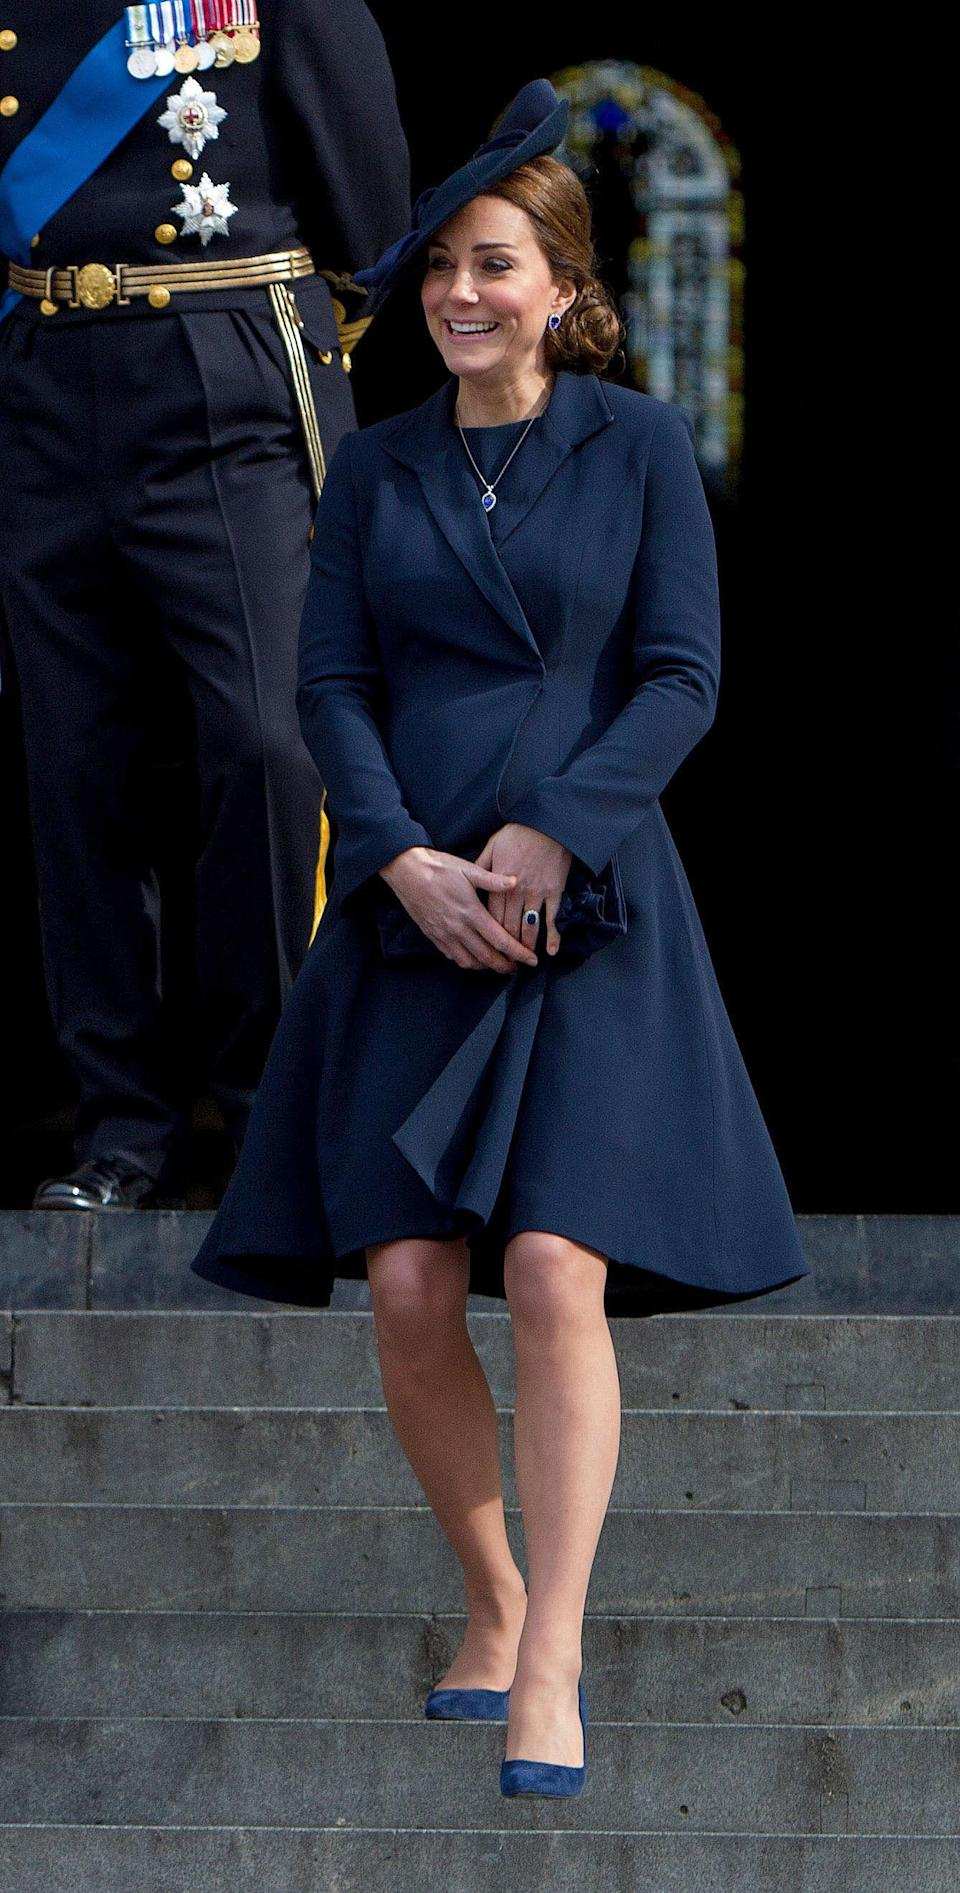 <p>The duchess was all smiles in a navy coat by Beulah London paired with blue suede heels.<br>(Photo: PA) </p>